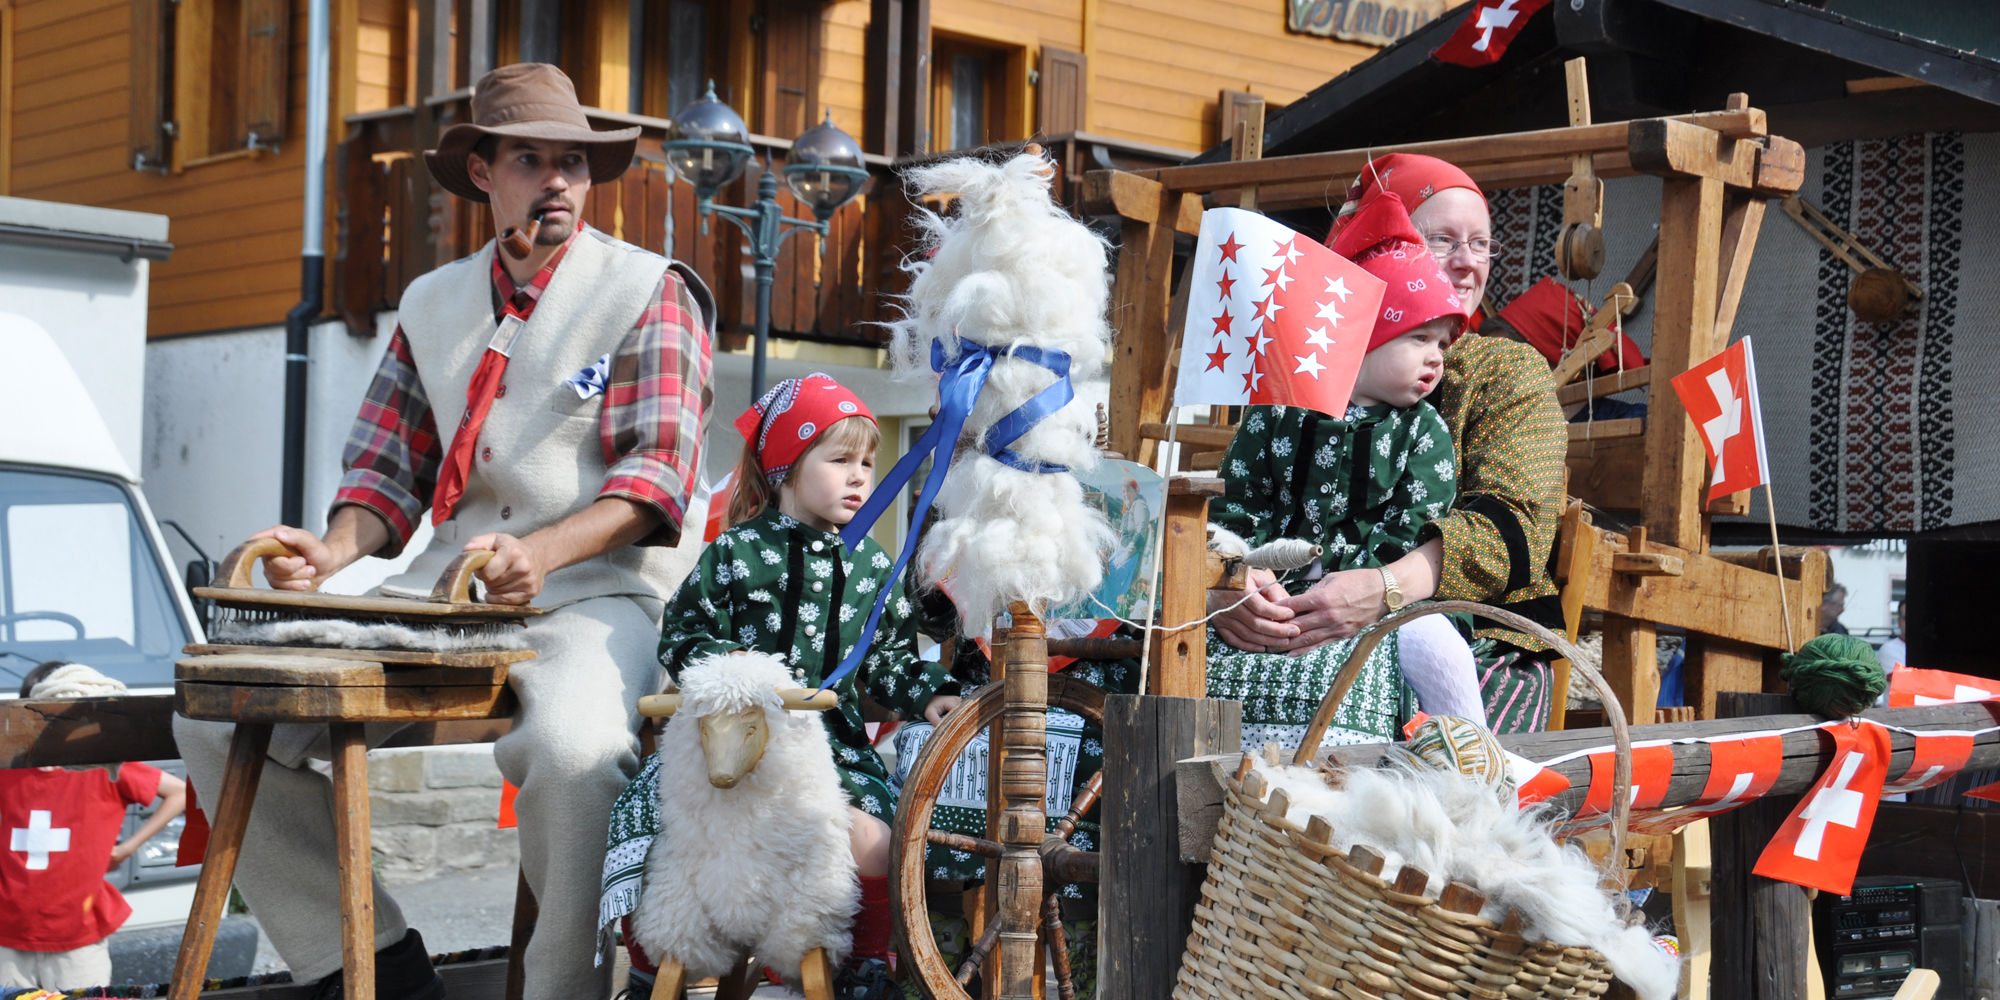 Swiss National Day in the Free Republic of Holidays Saas-Fee